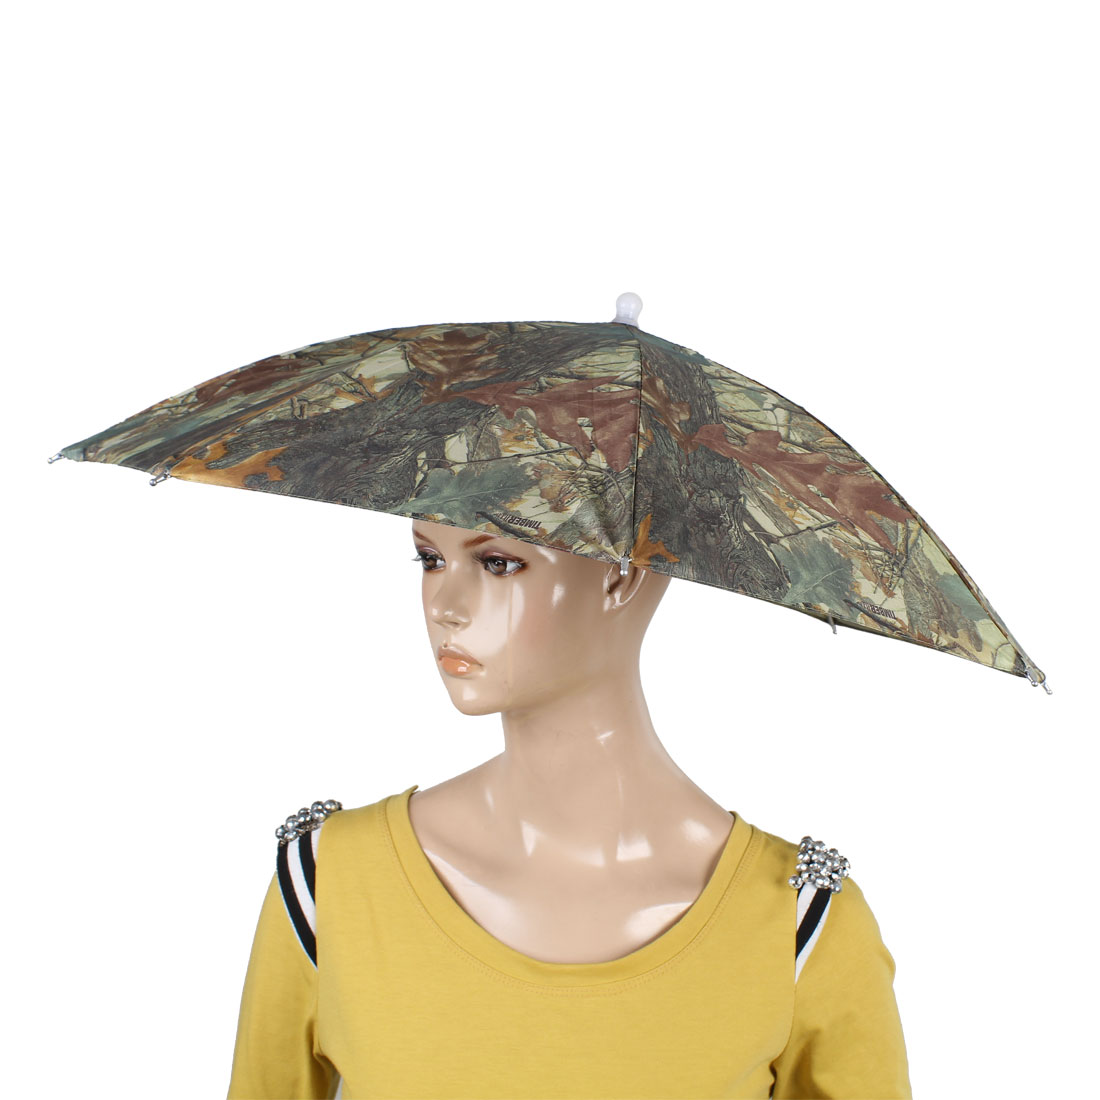 Seagreen Polyester Leaf Print Cover Fishing Sun Shading Umbrella Hat 40cm Long